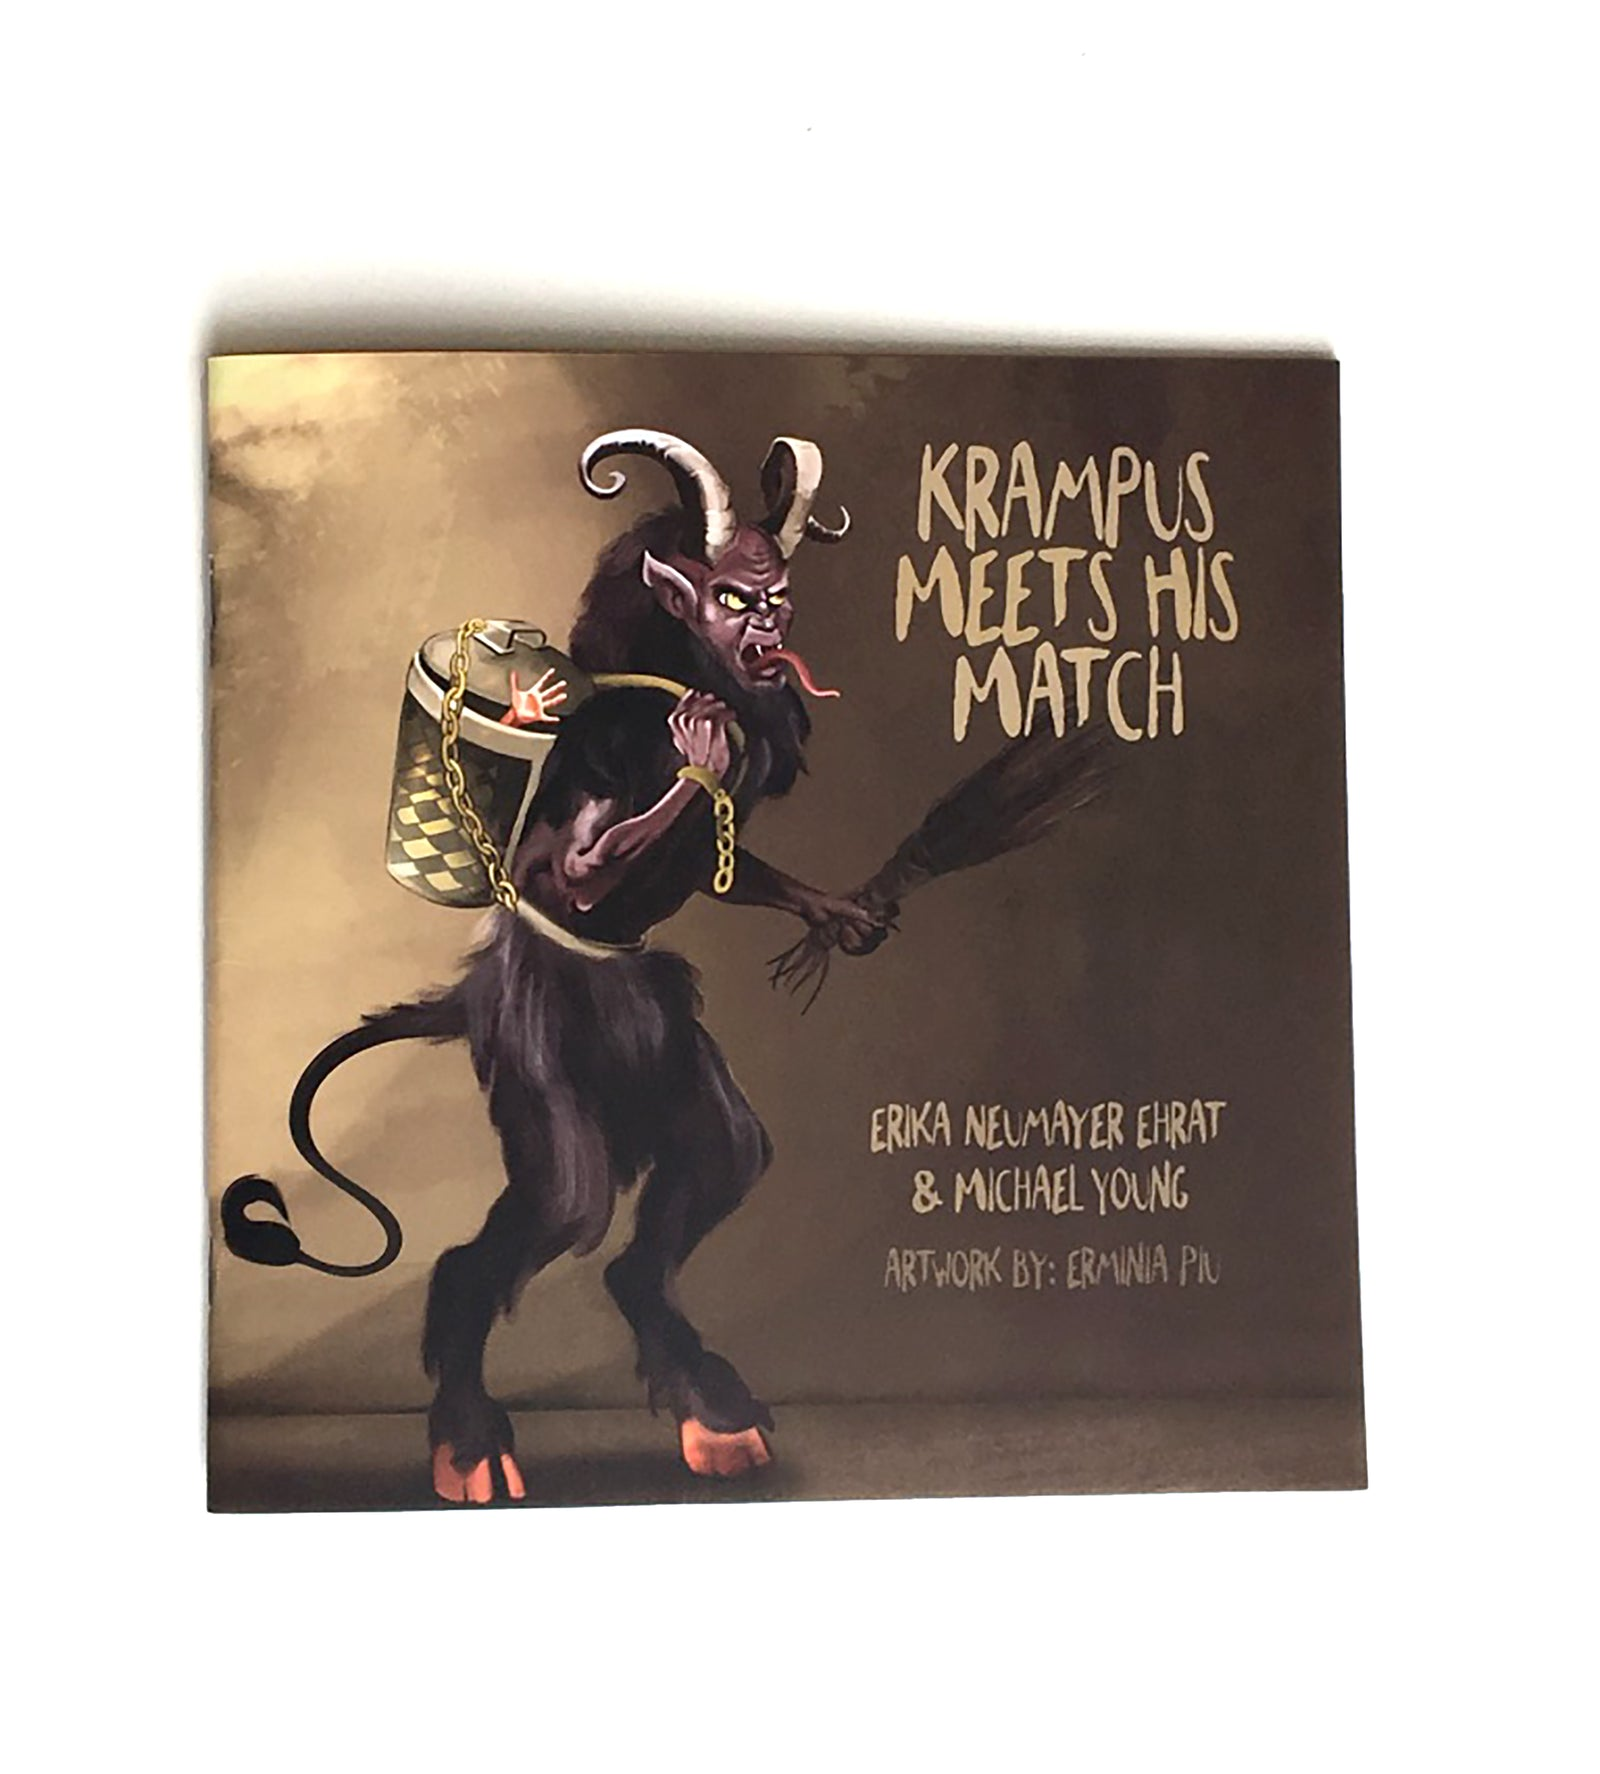 """Krampus Meets His Match"" - the Krampus Book - Rare Dirndl"